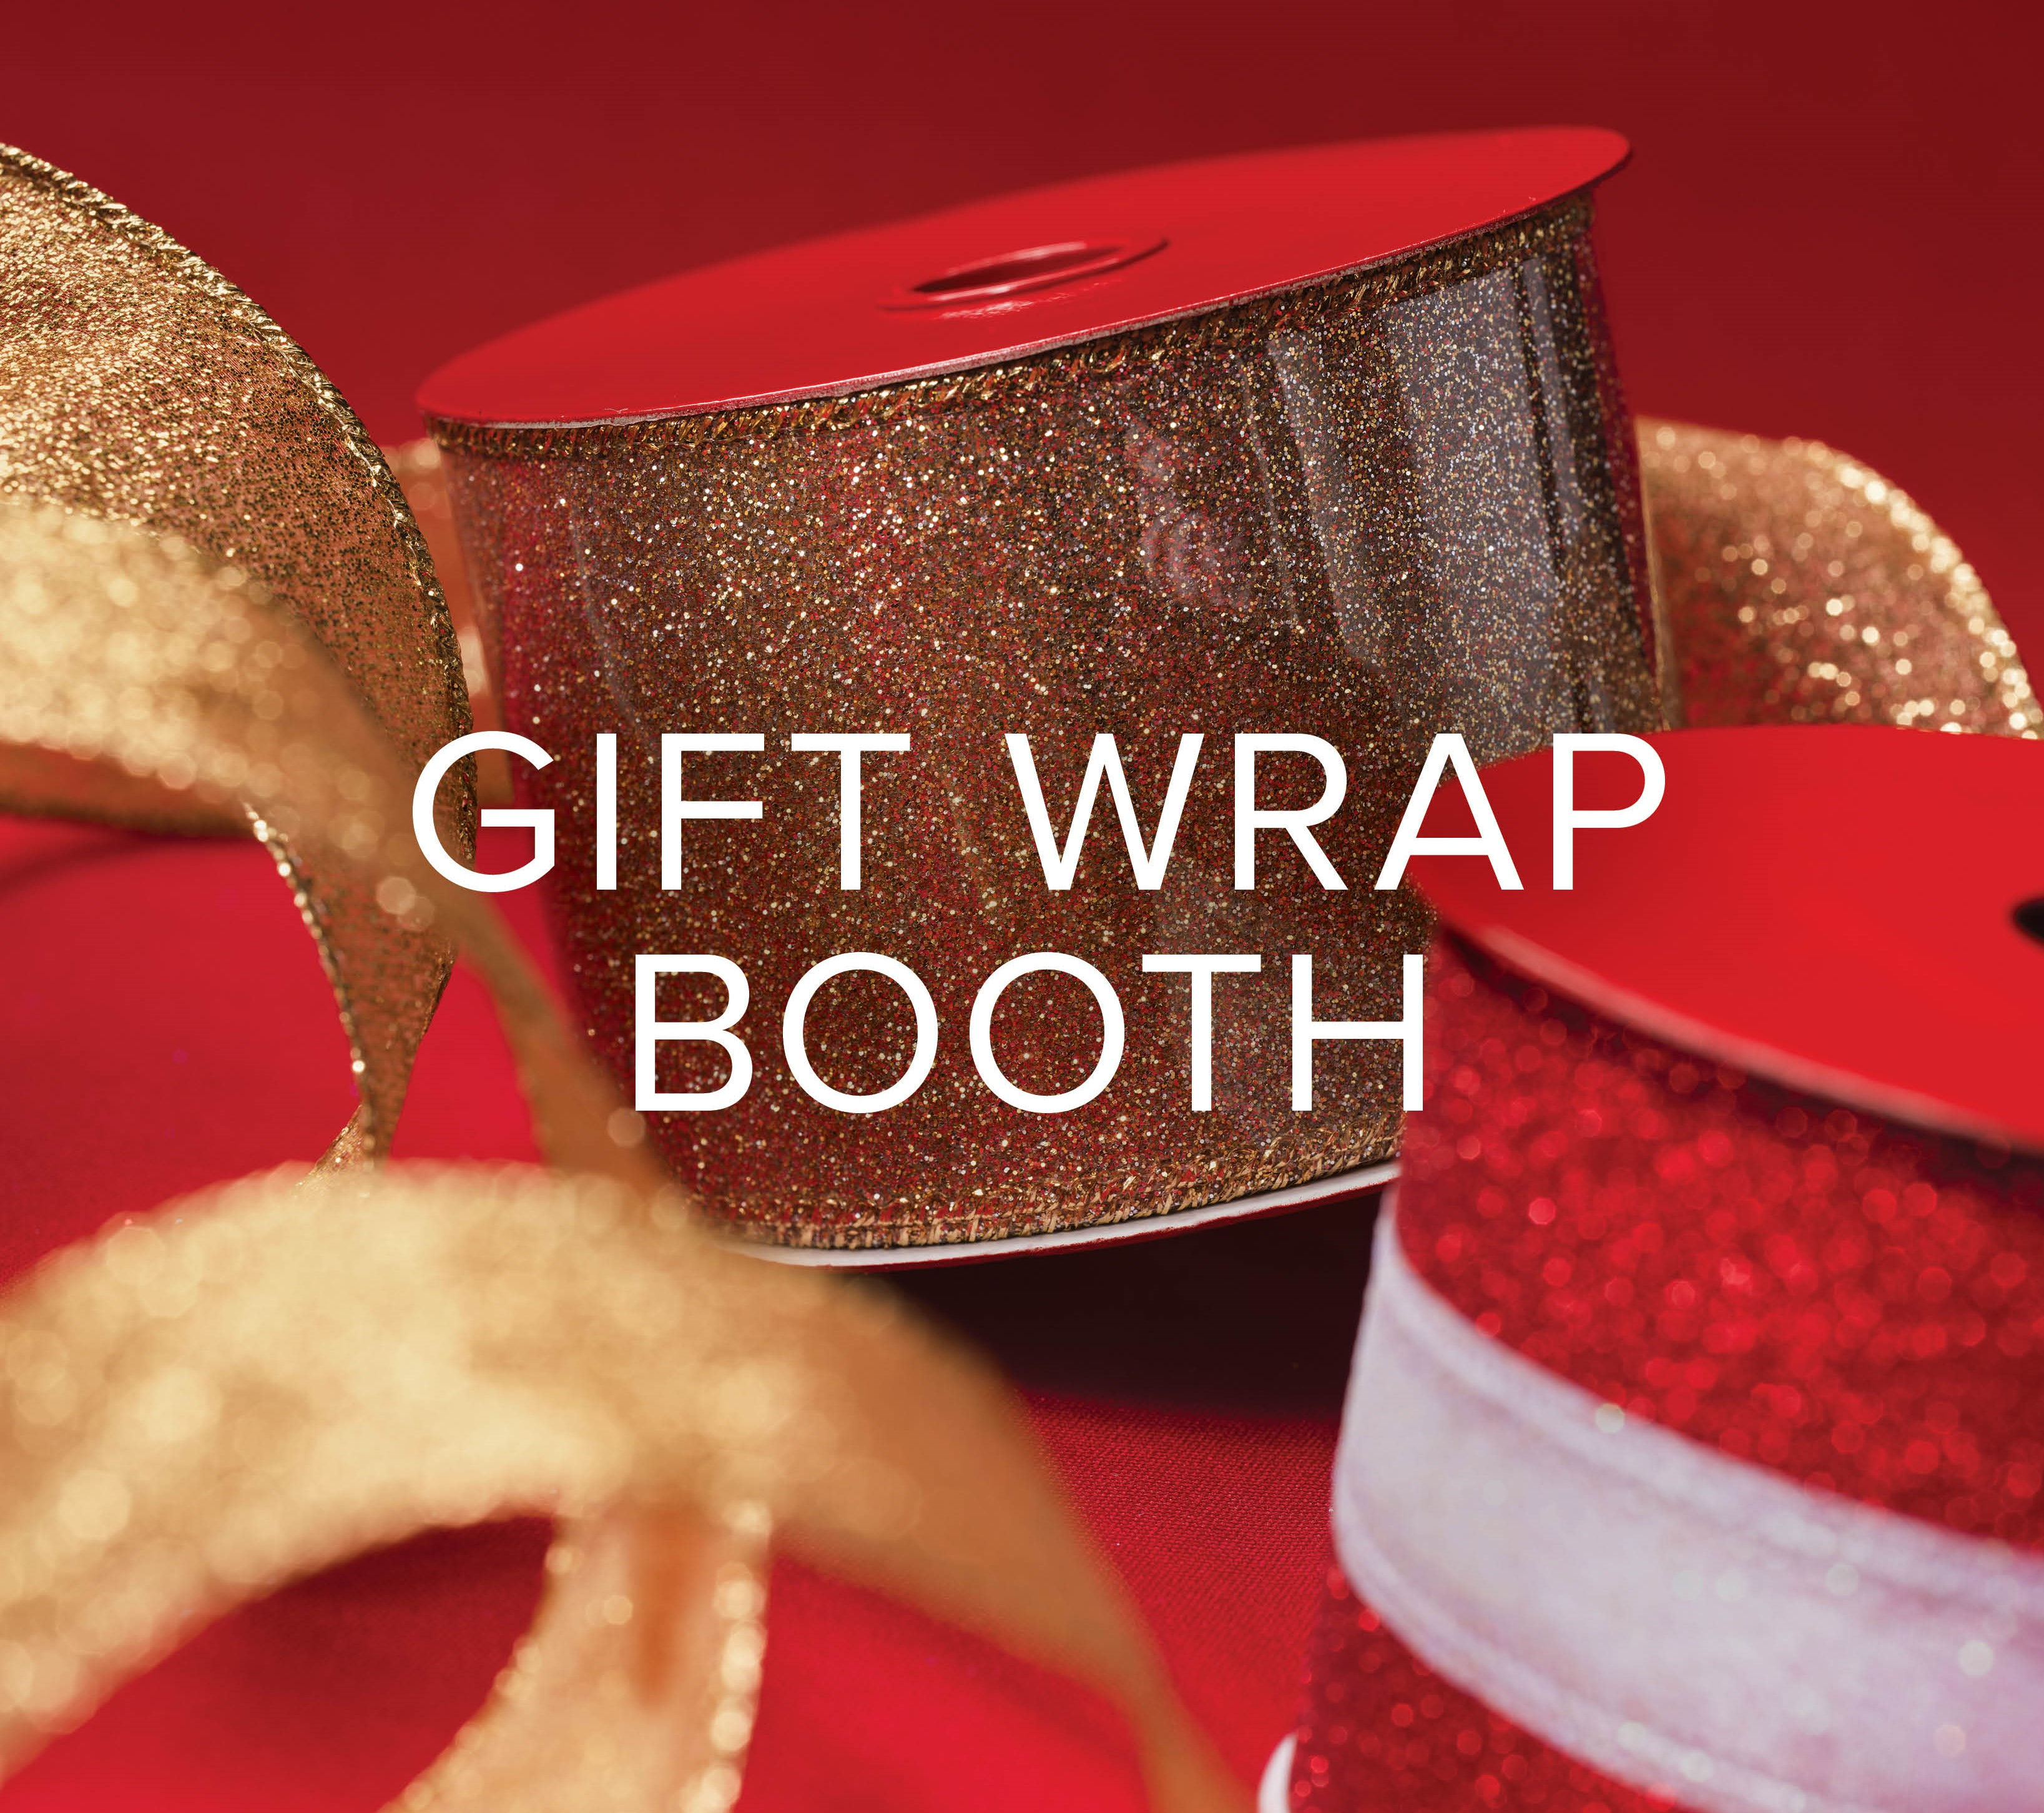 Charity Gift Wrap Booth